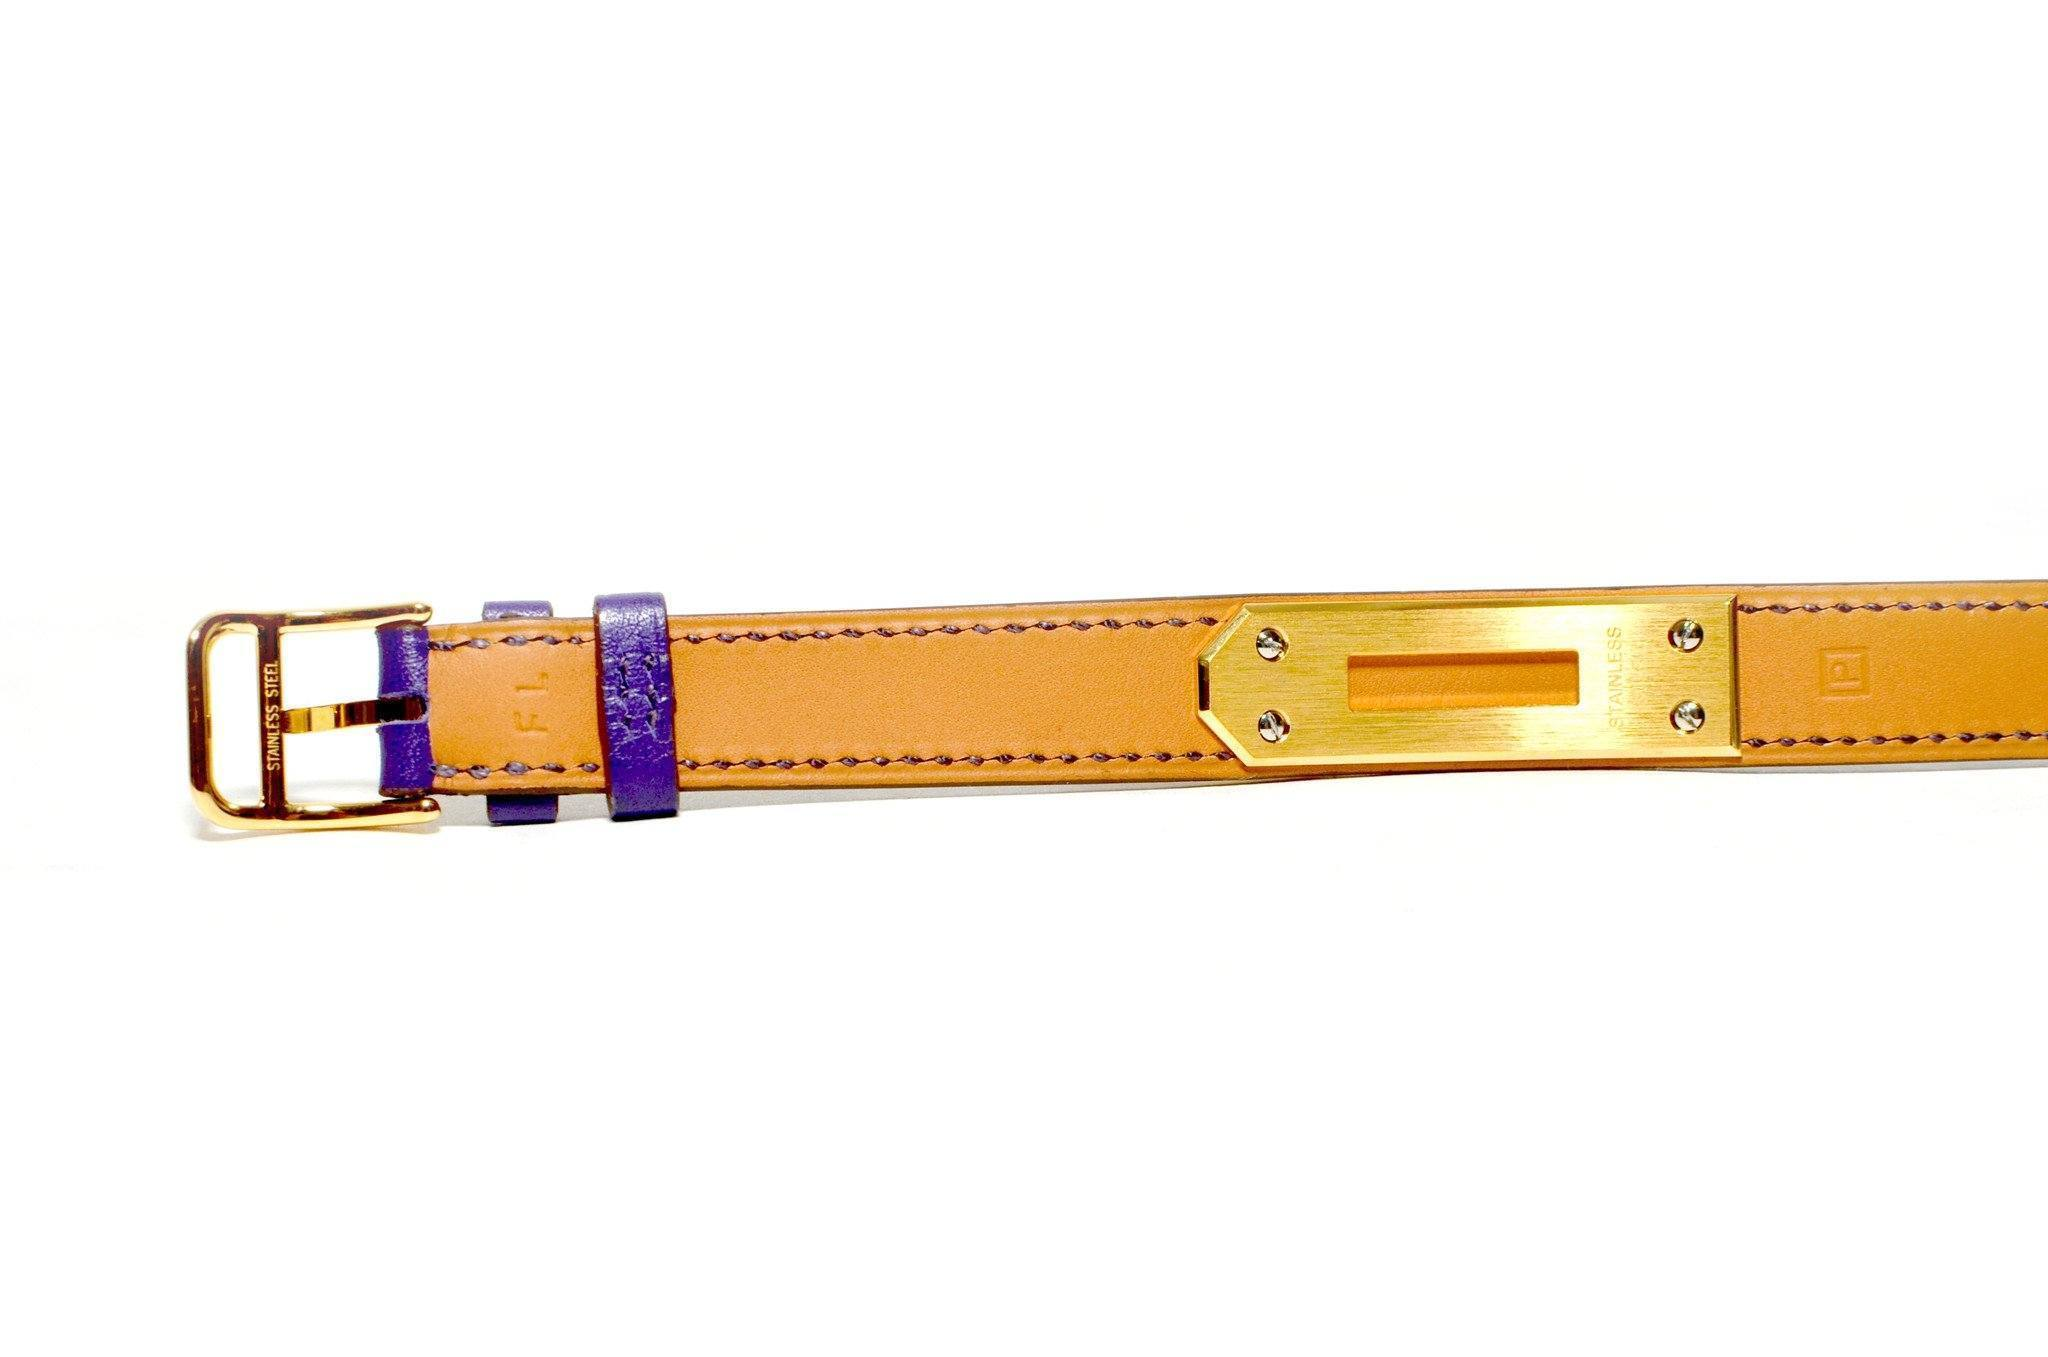 Authentic Vintage Hermes Purple Kelly Double Strap Watch with Gold Hardware